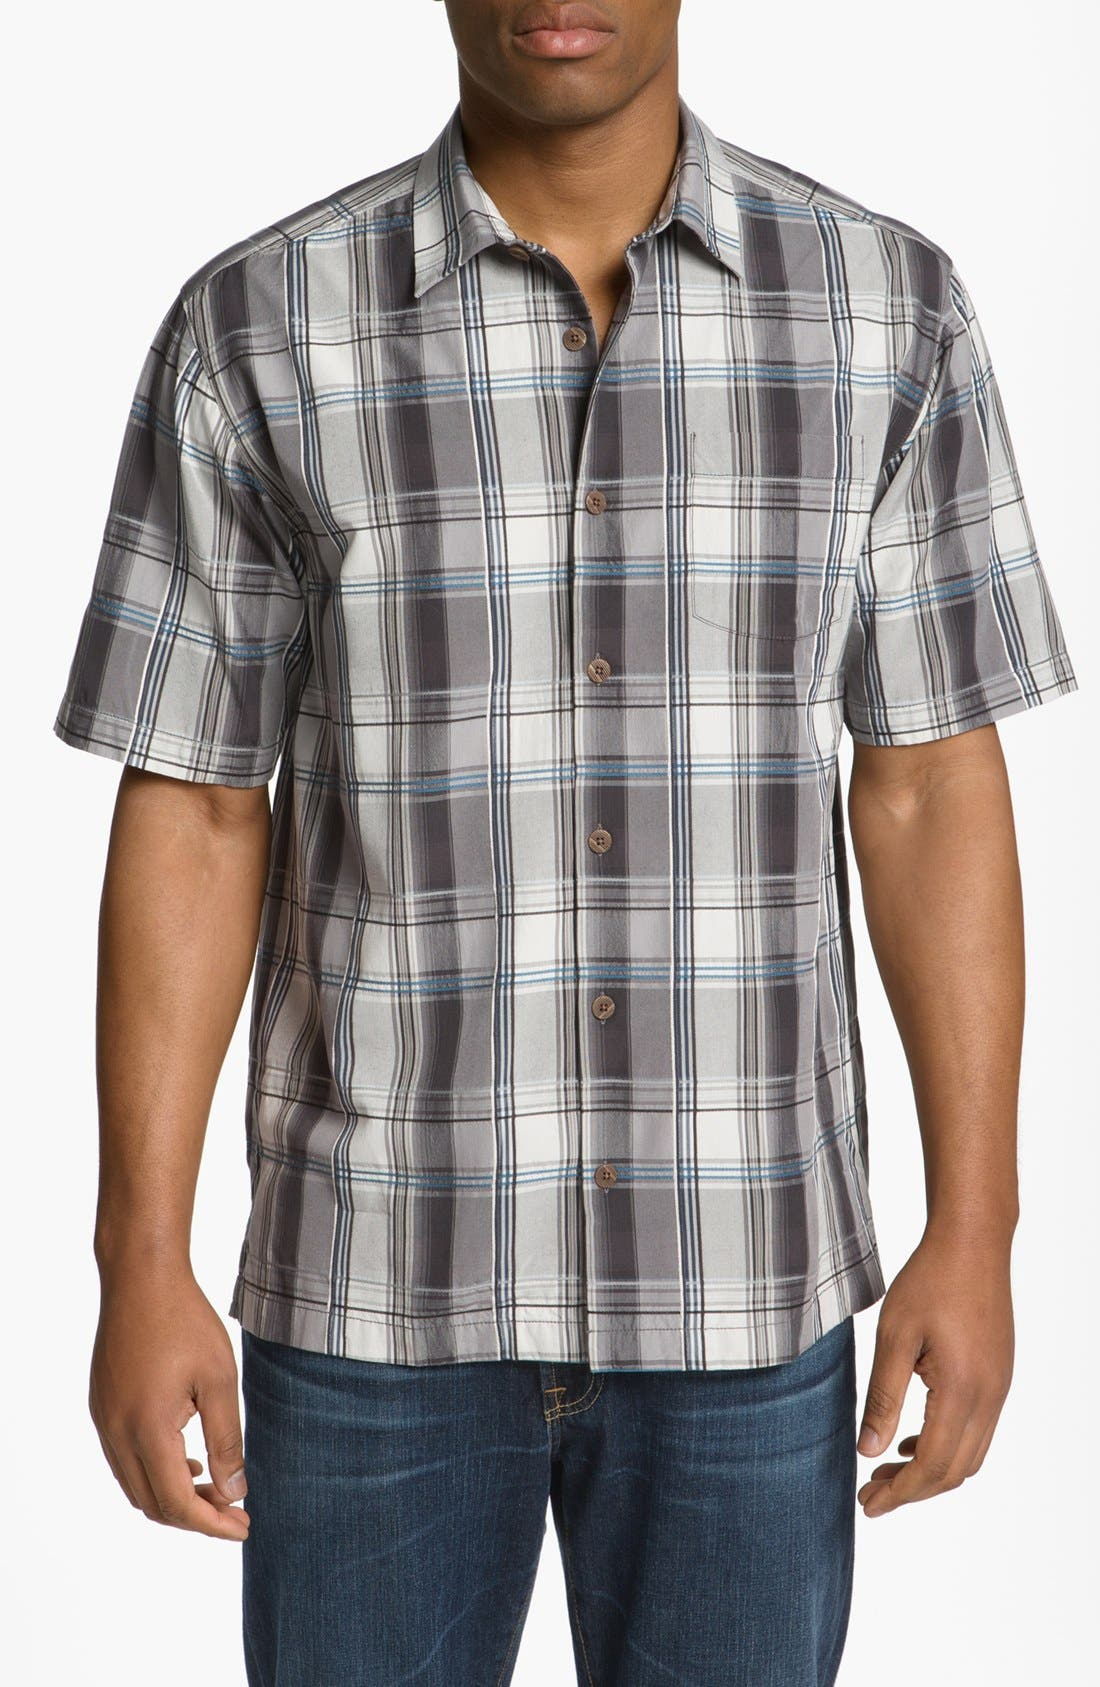 Alternate Image 1 Selected - Tommy Bahama 'Palace Plaid' Silk Campshirt